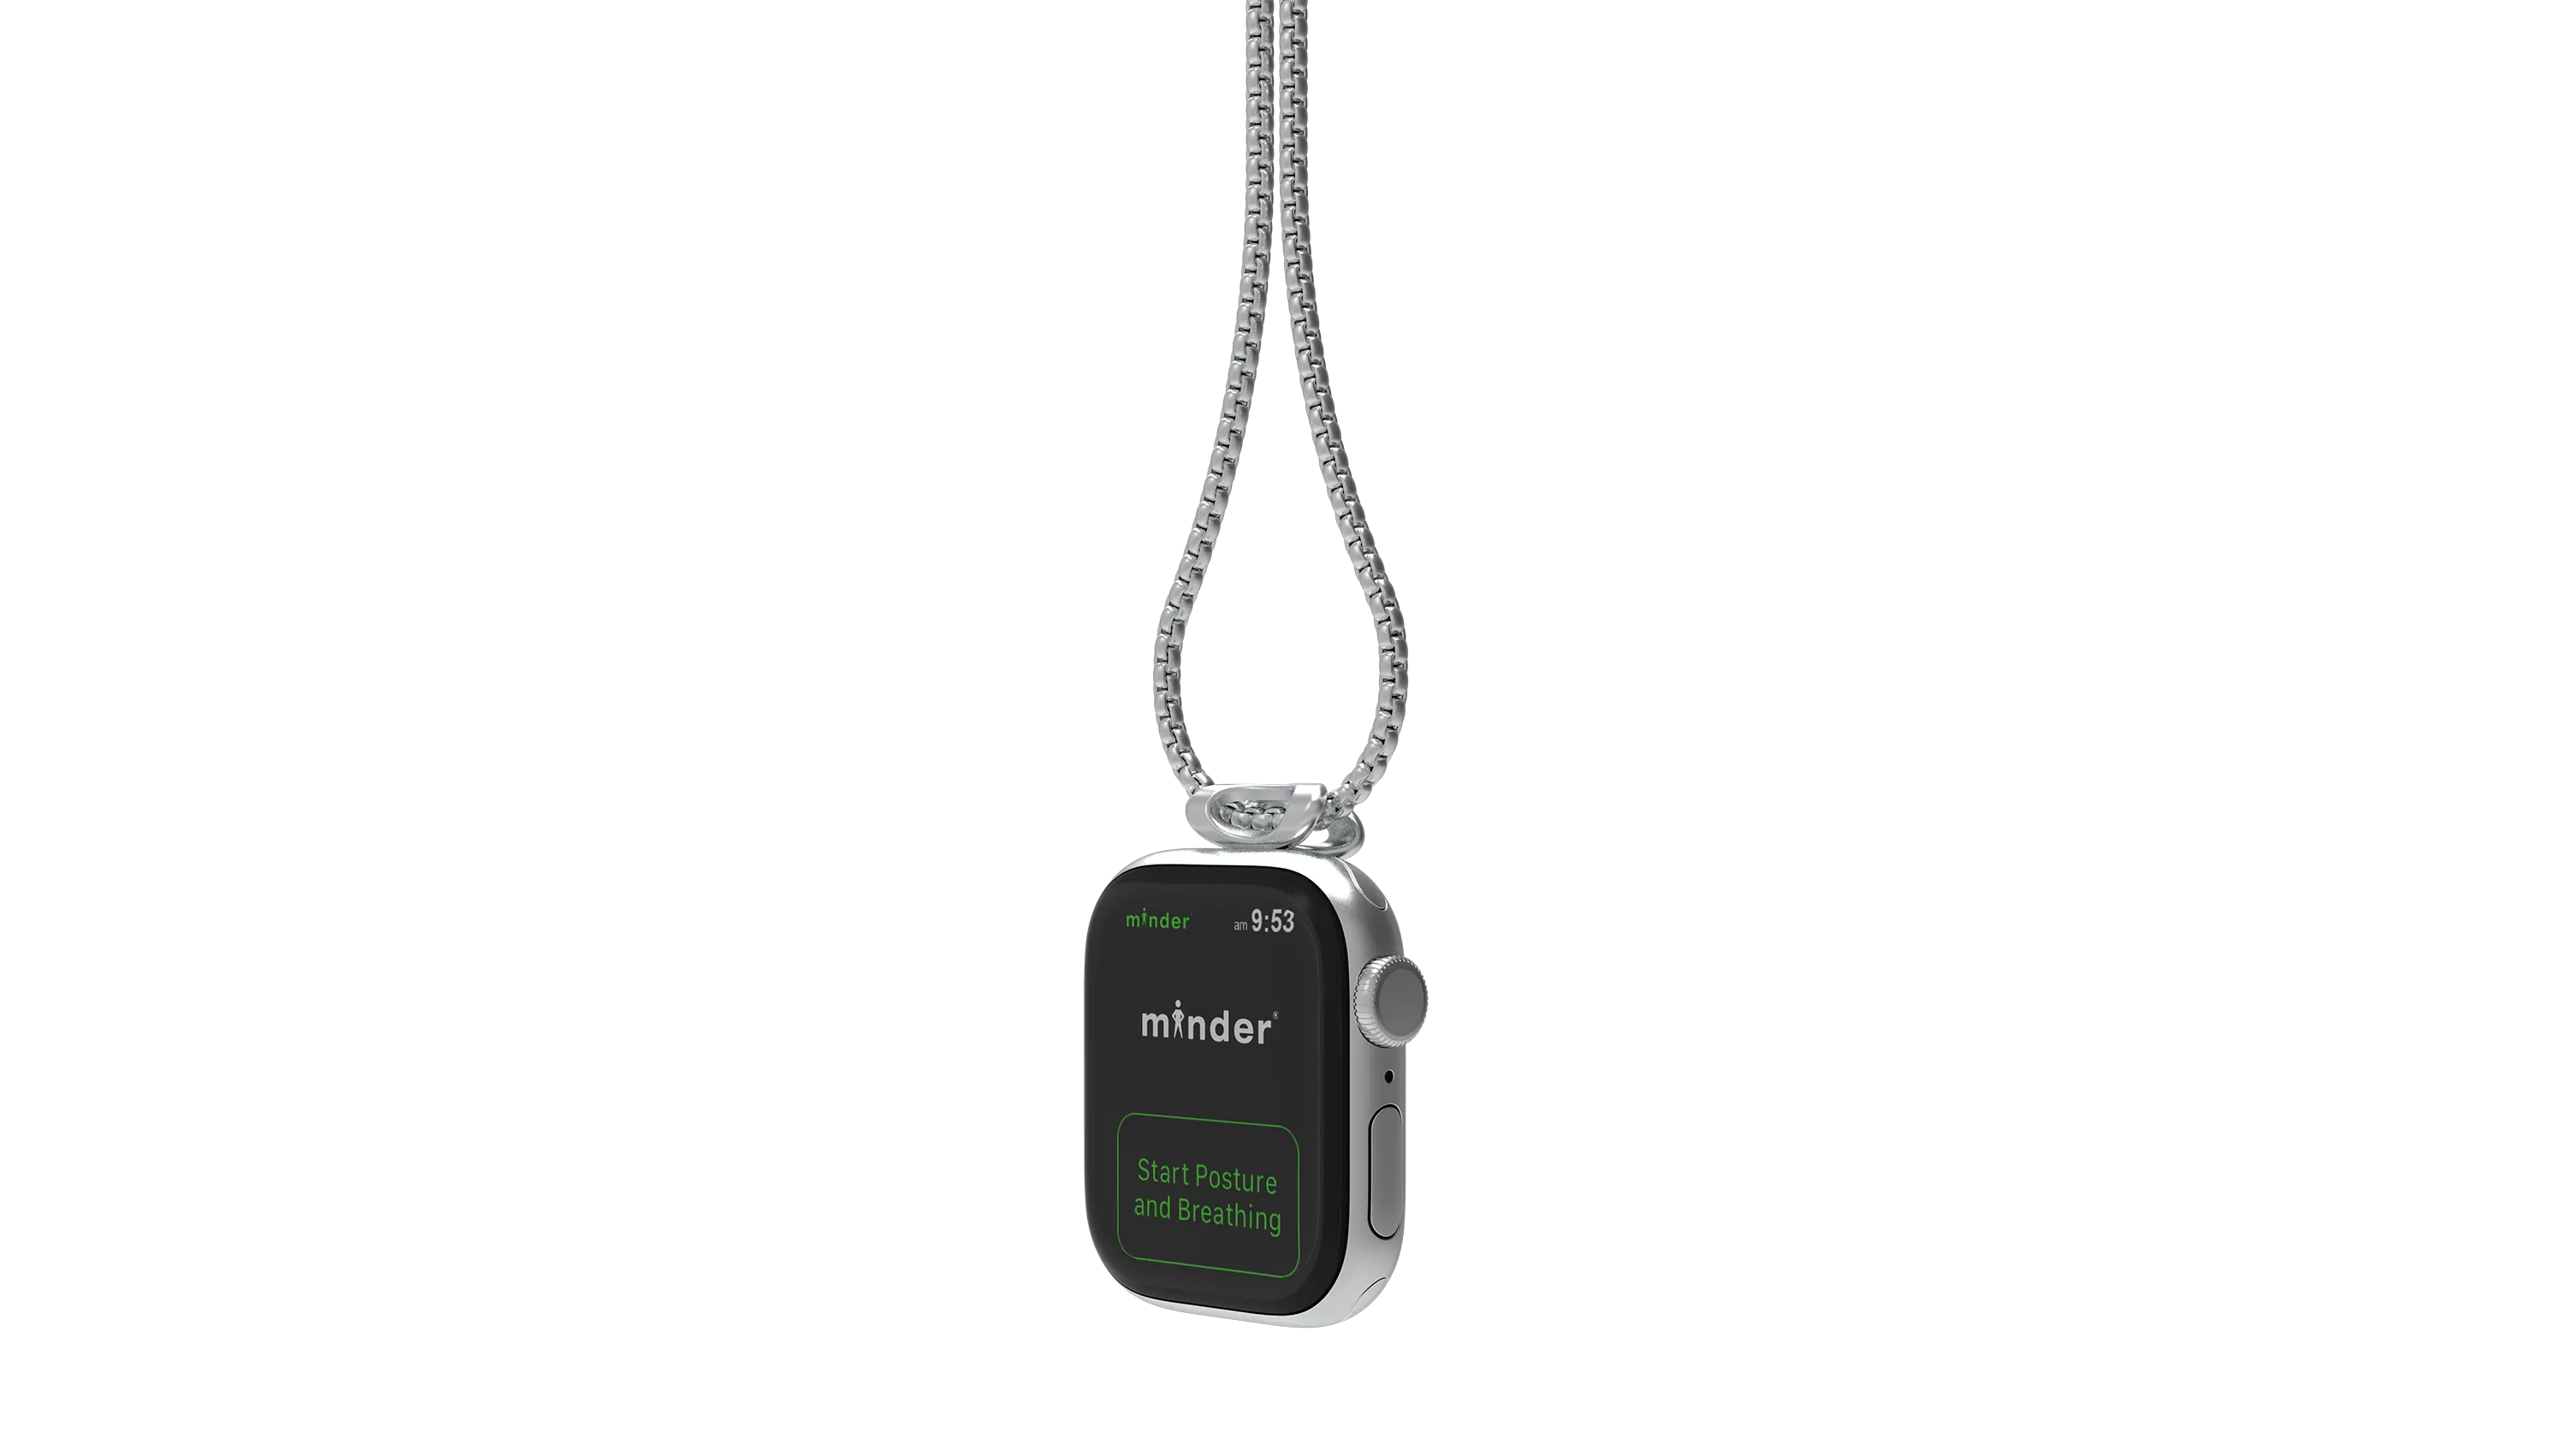 minder necklace with Apple Watch